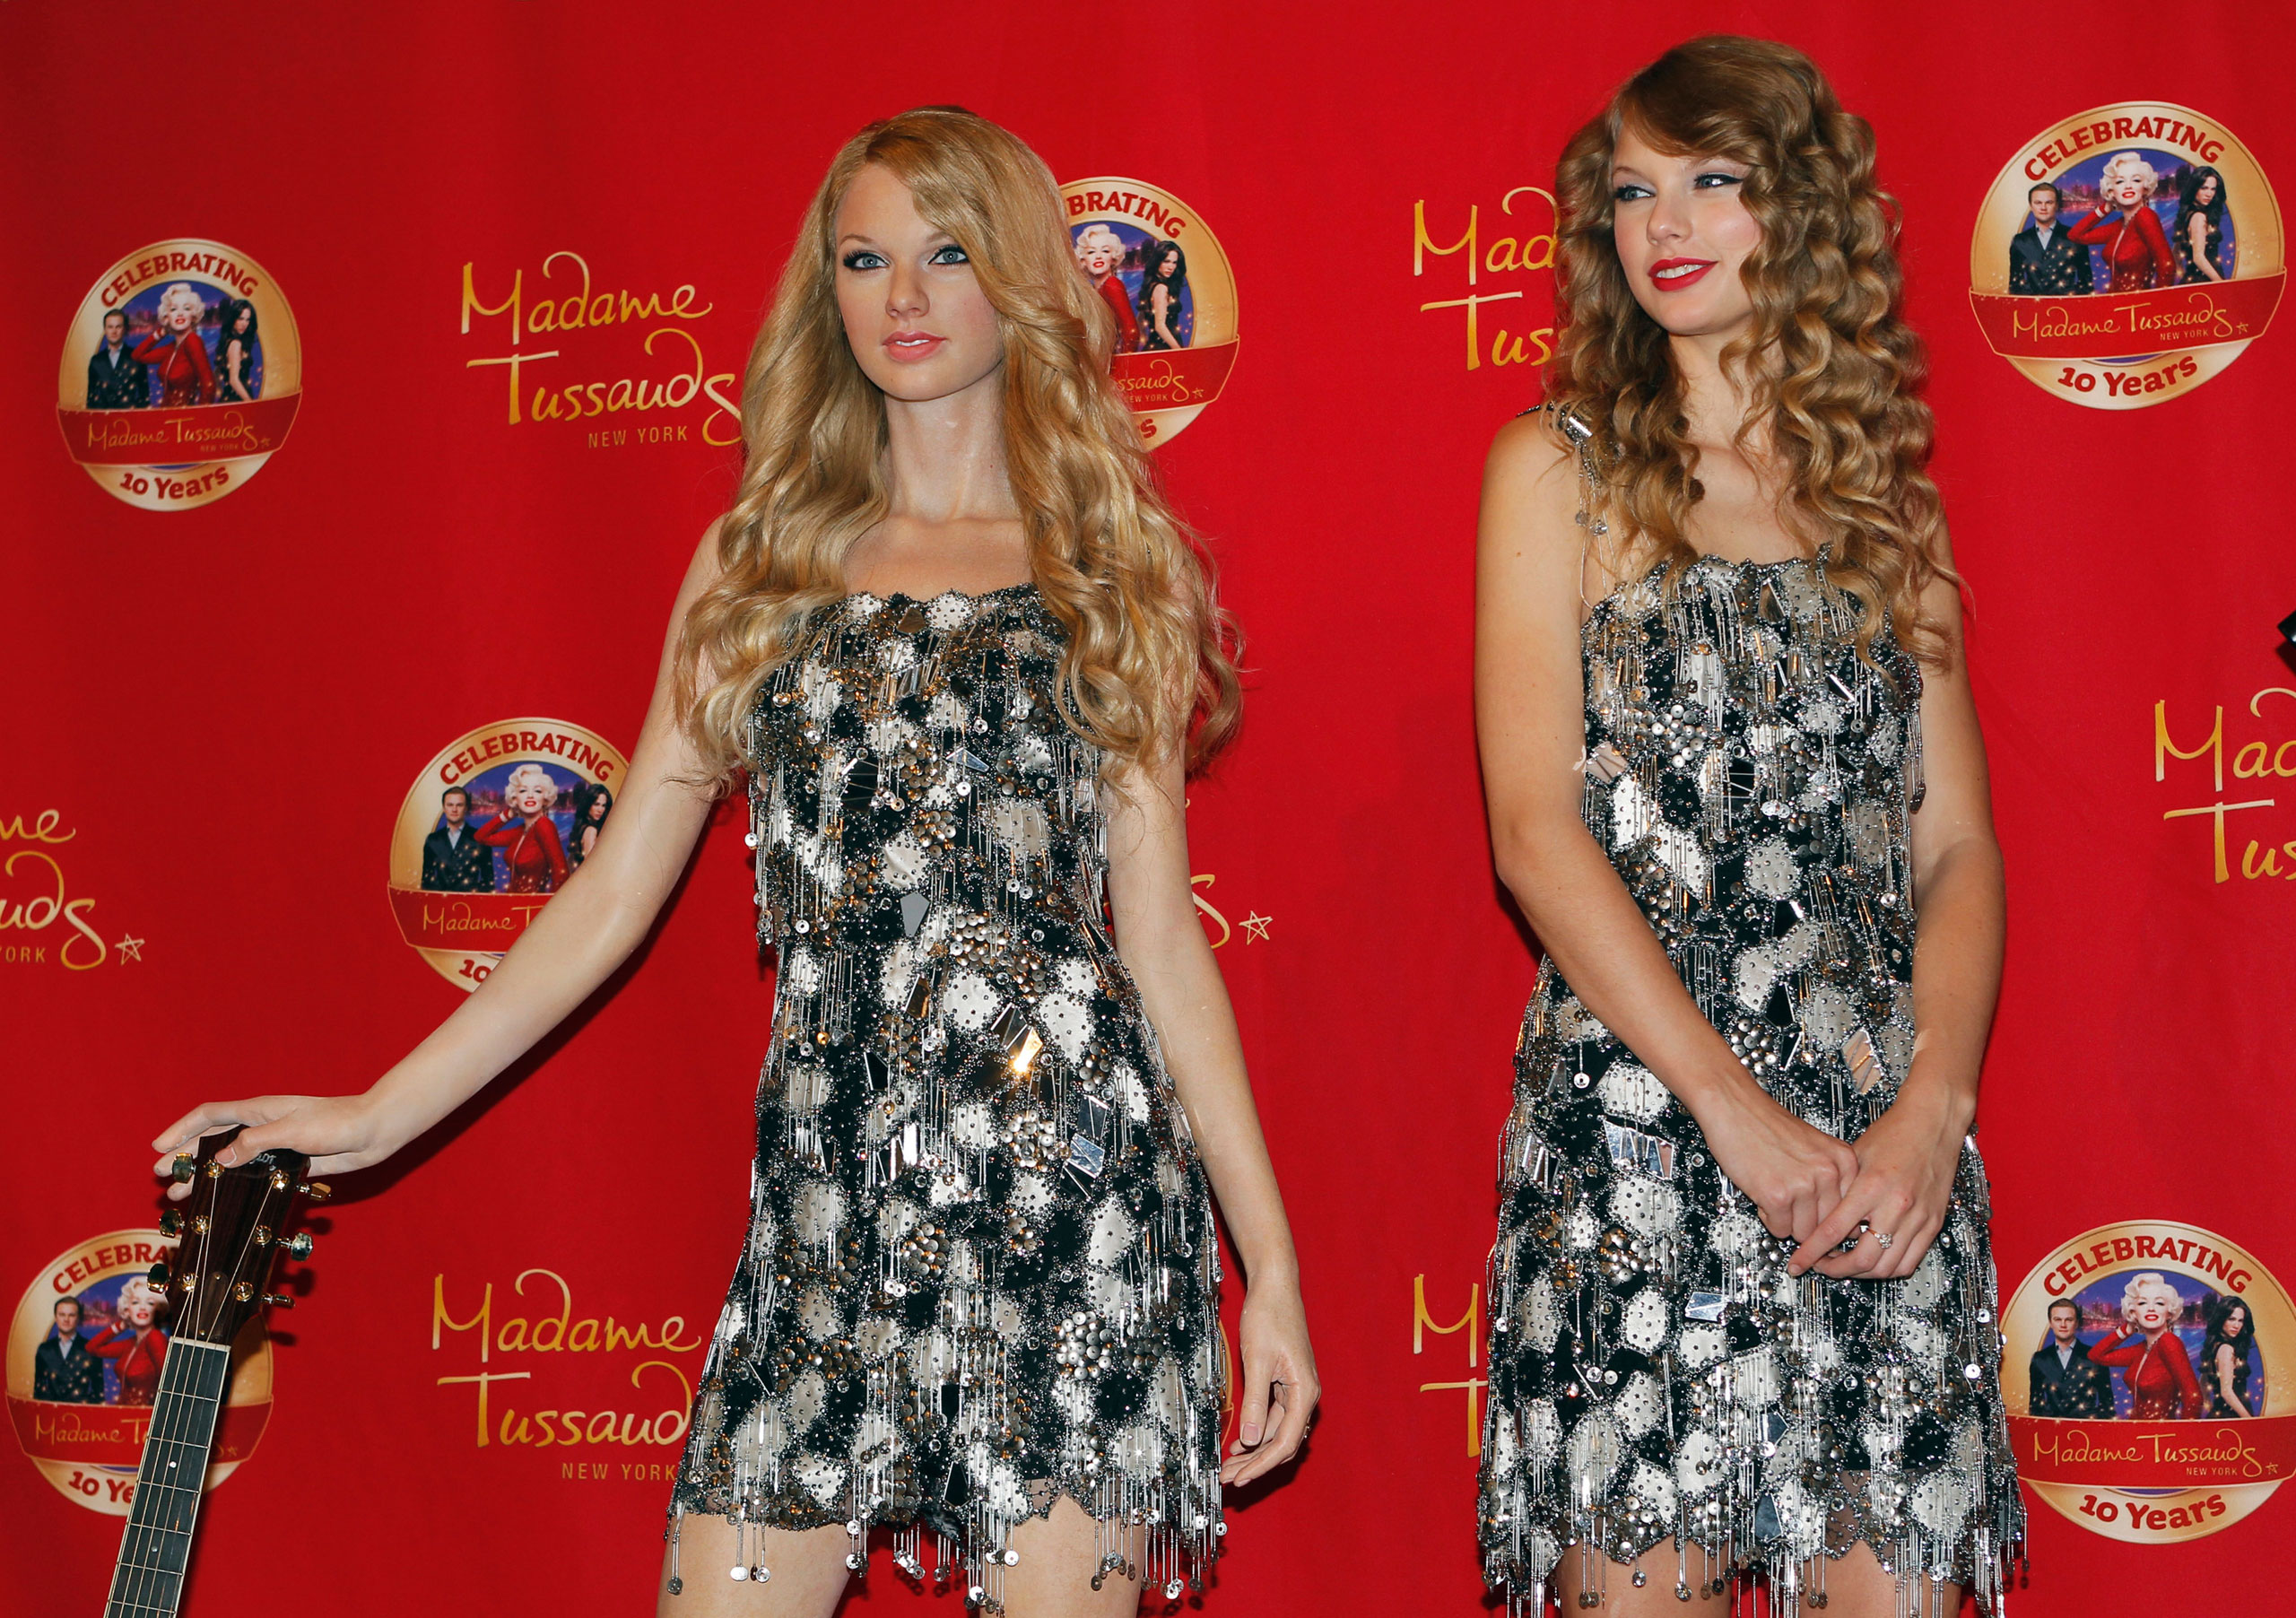 Taylor Swift, right, poses with her wax figure during an unveiling of her statue at Madame Tussauds in New York on  Oct. 27, 2010.